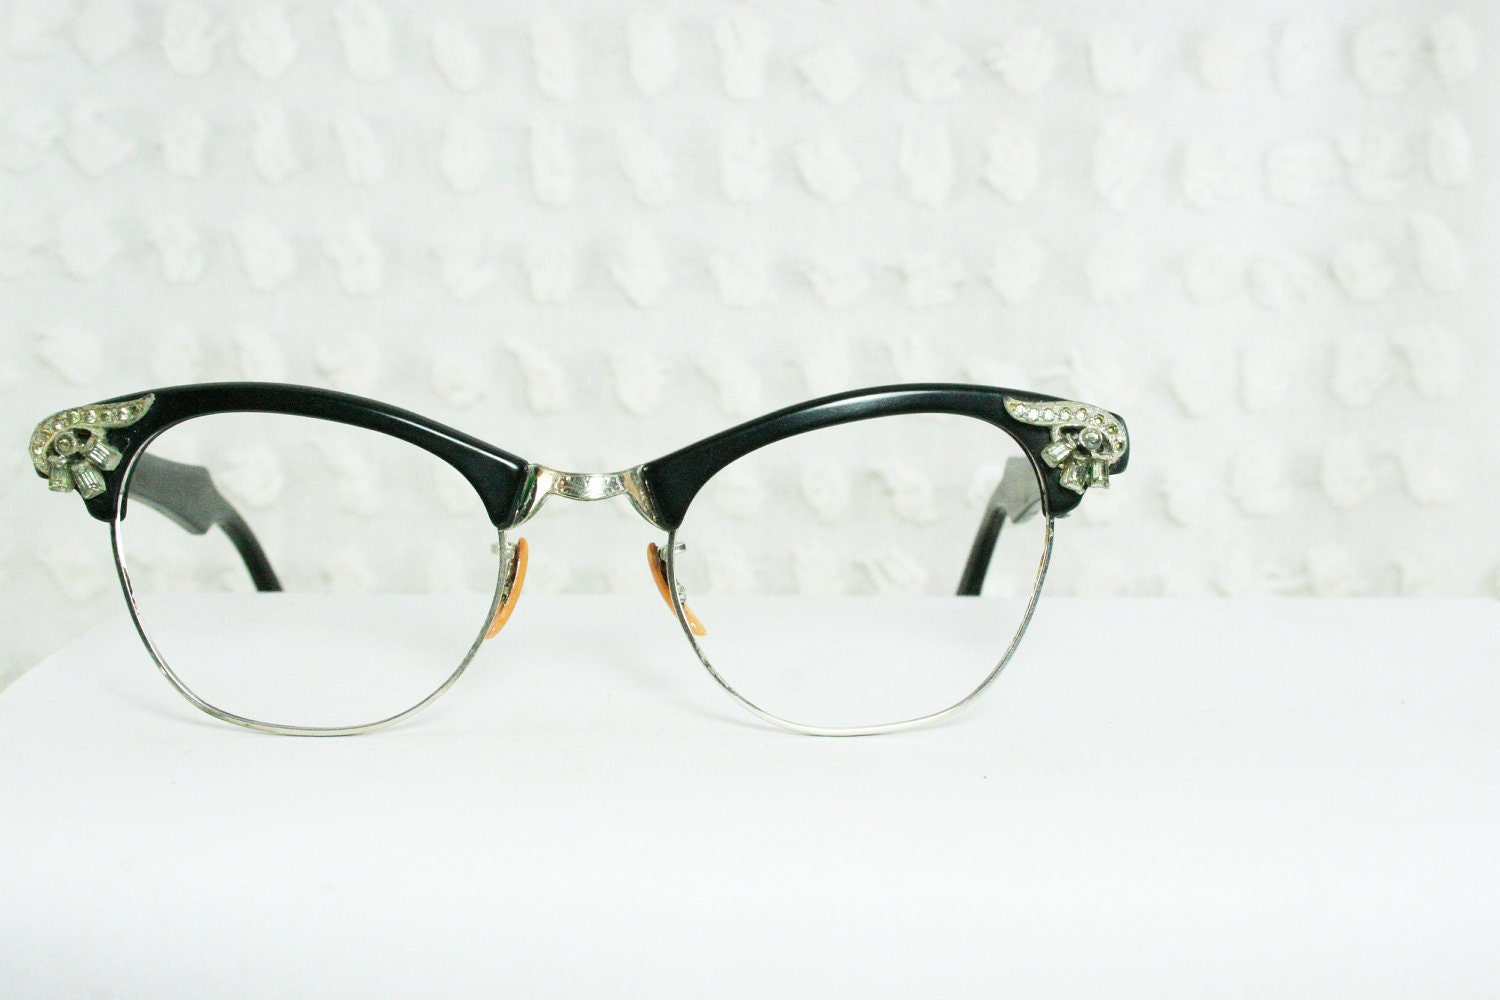 50s Rhinestone Eyeglasses 1950s Cat Eye Glasses by DIAeyewear